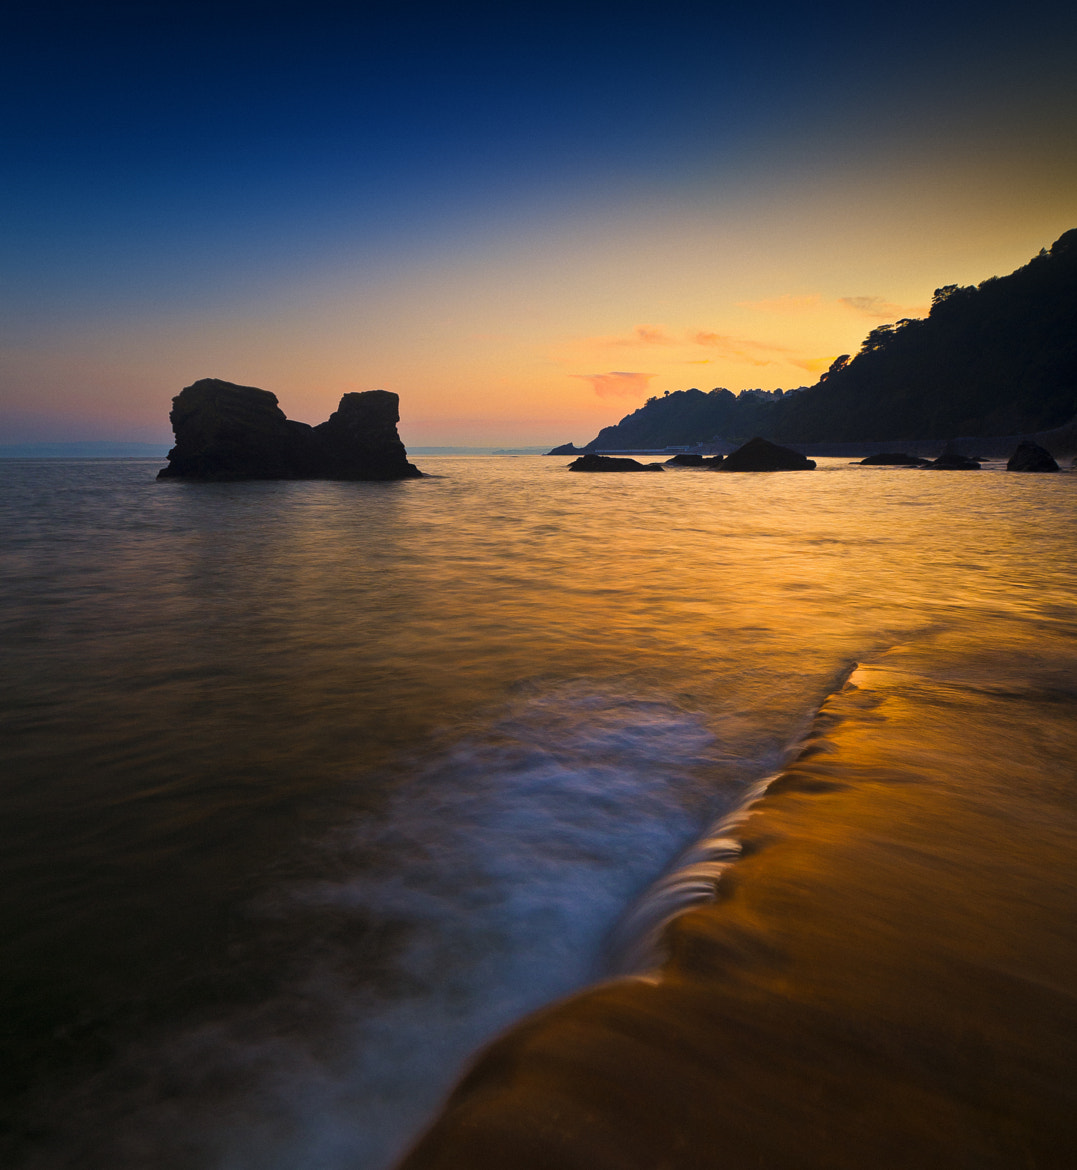 Photograph Meadfoot beach at sunset 2 by Mark Frost on 500px